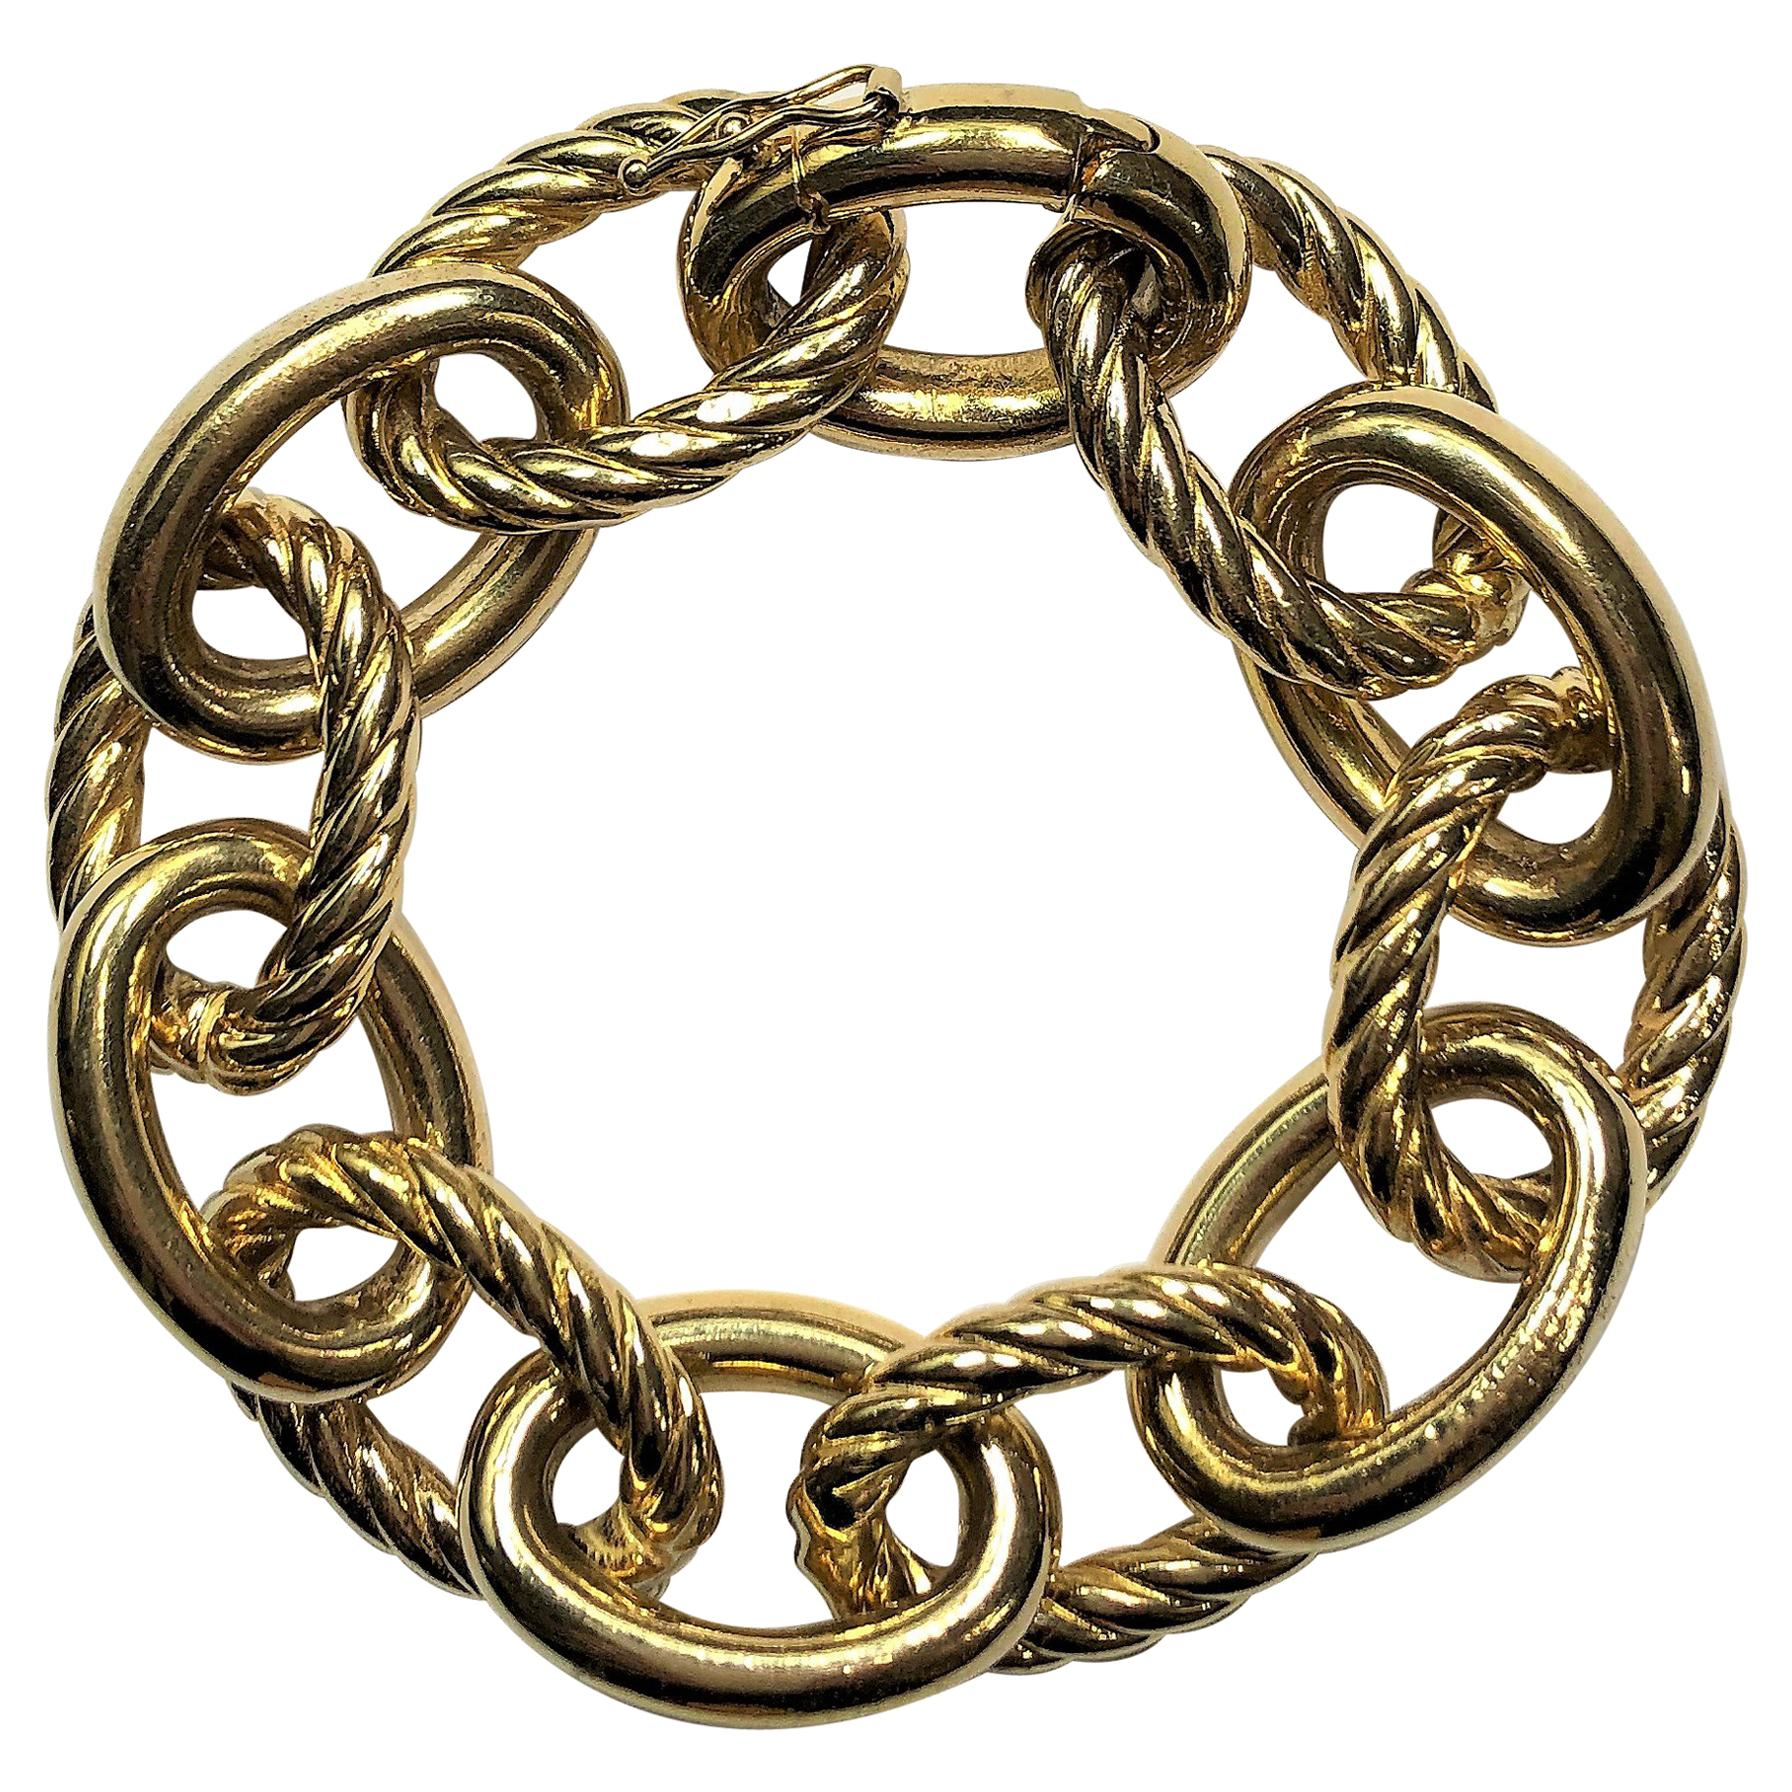 Heavy Weight Gold, Large Cable Link Bracelet